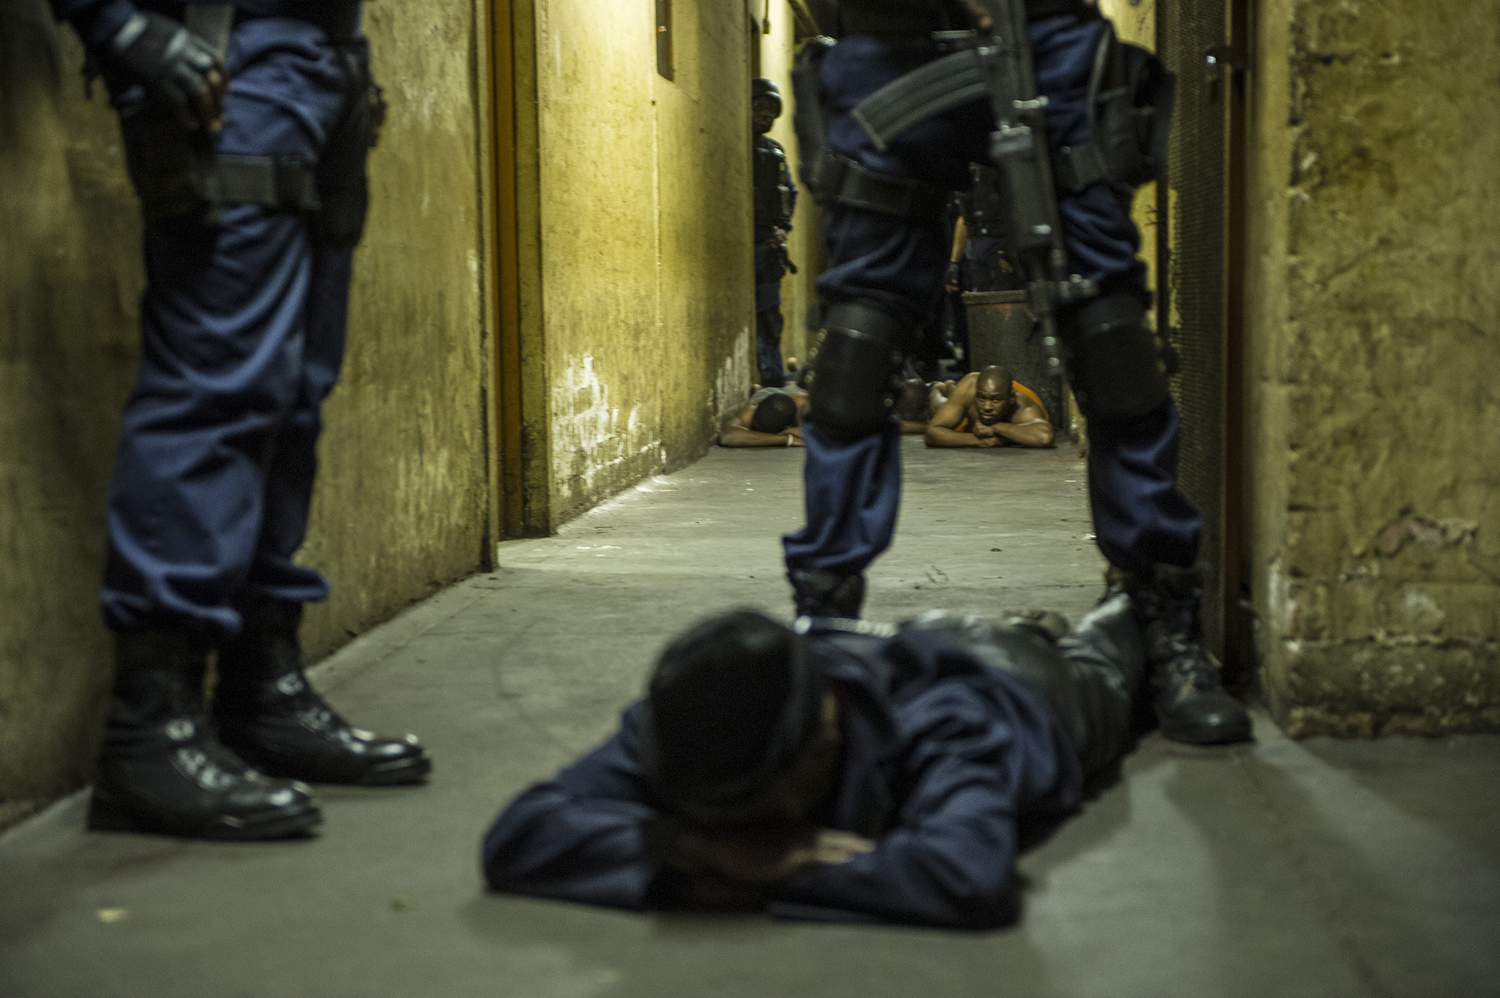 South African police officers and troops of the South African Defence Force raid the Jeppie hostels in the Jeppestown district of Johannesburg late on April 21, 2015